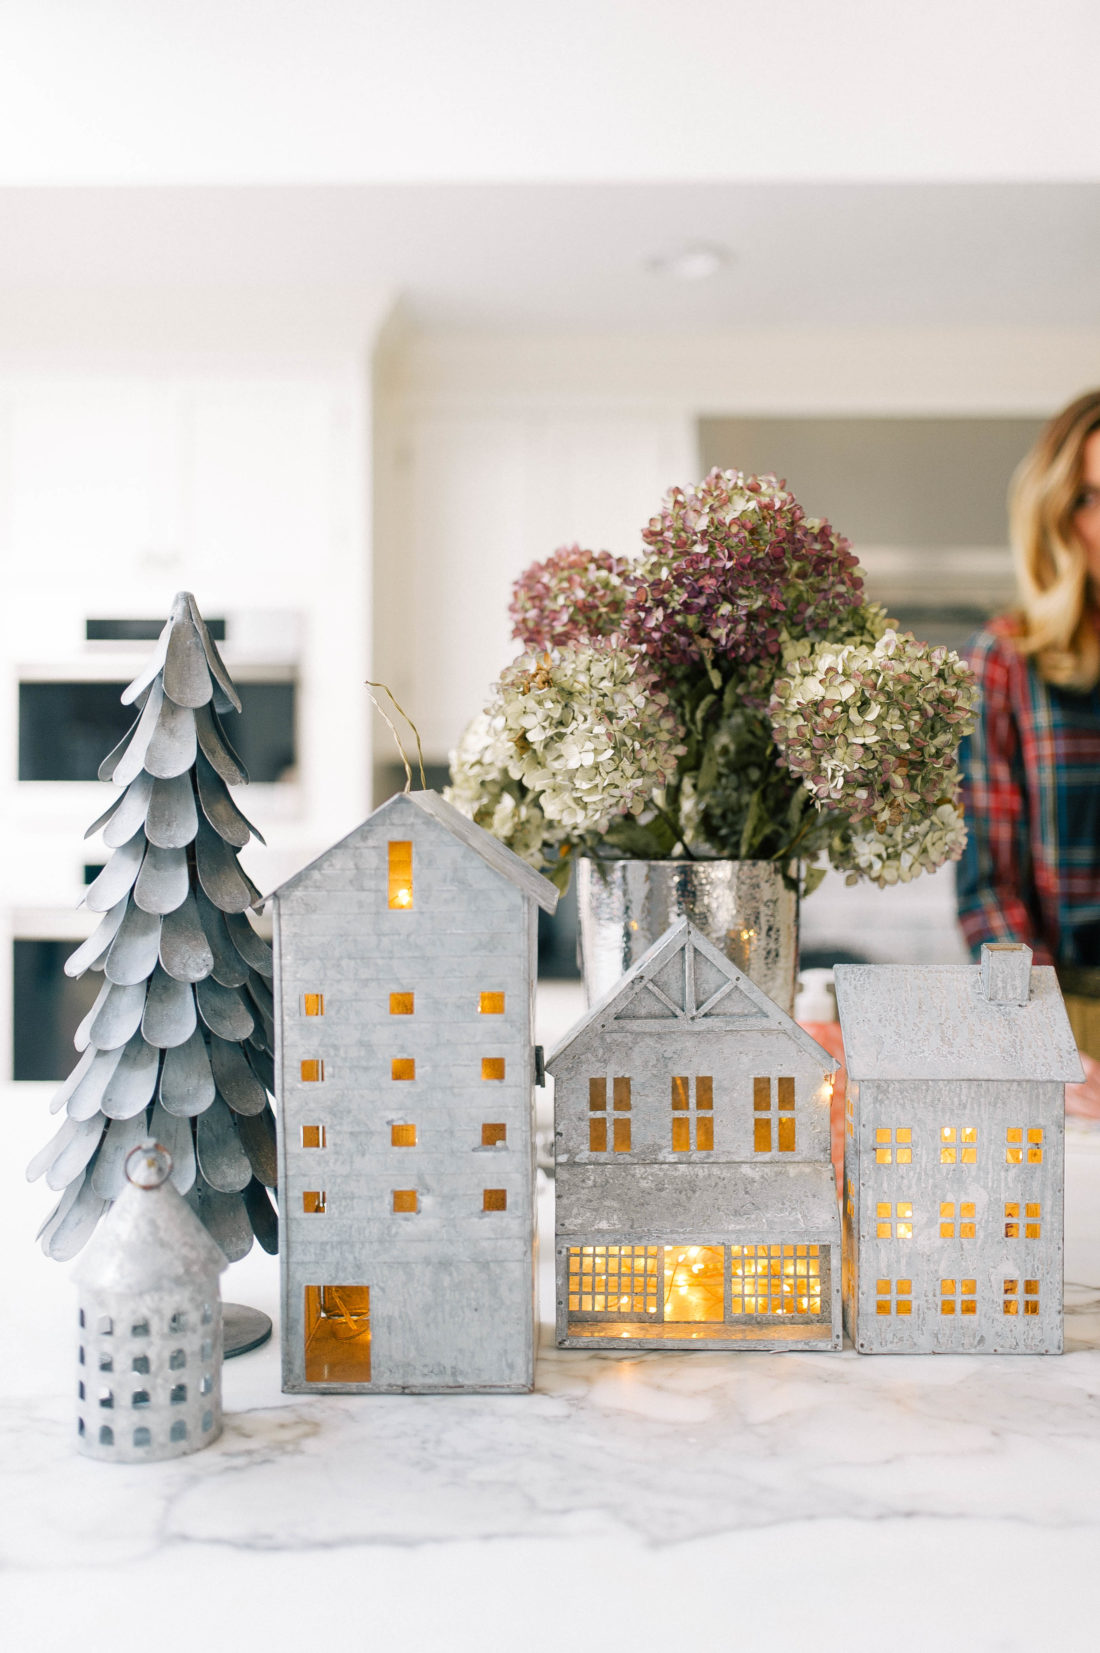 Eva Amurri Martino prepares lunch in her kitchen that is decorated for christmas with galvanized steel houses filled with twinkly lights